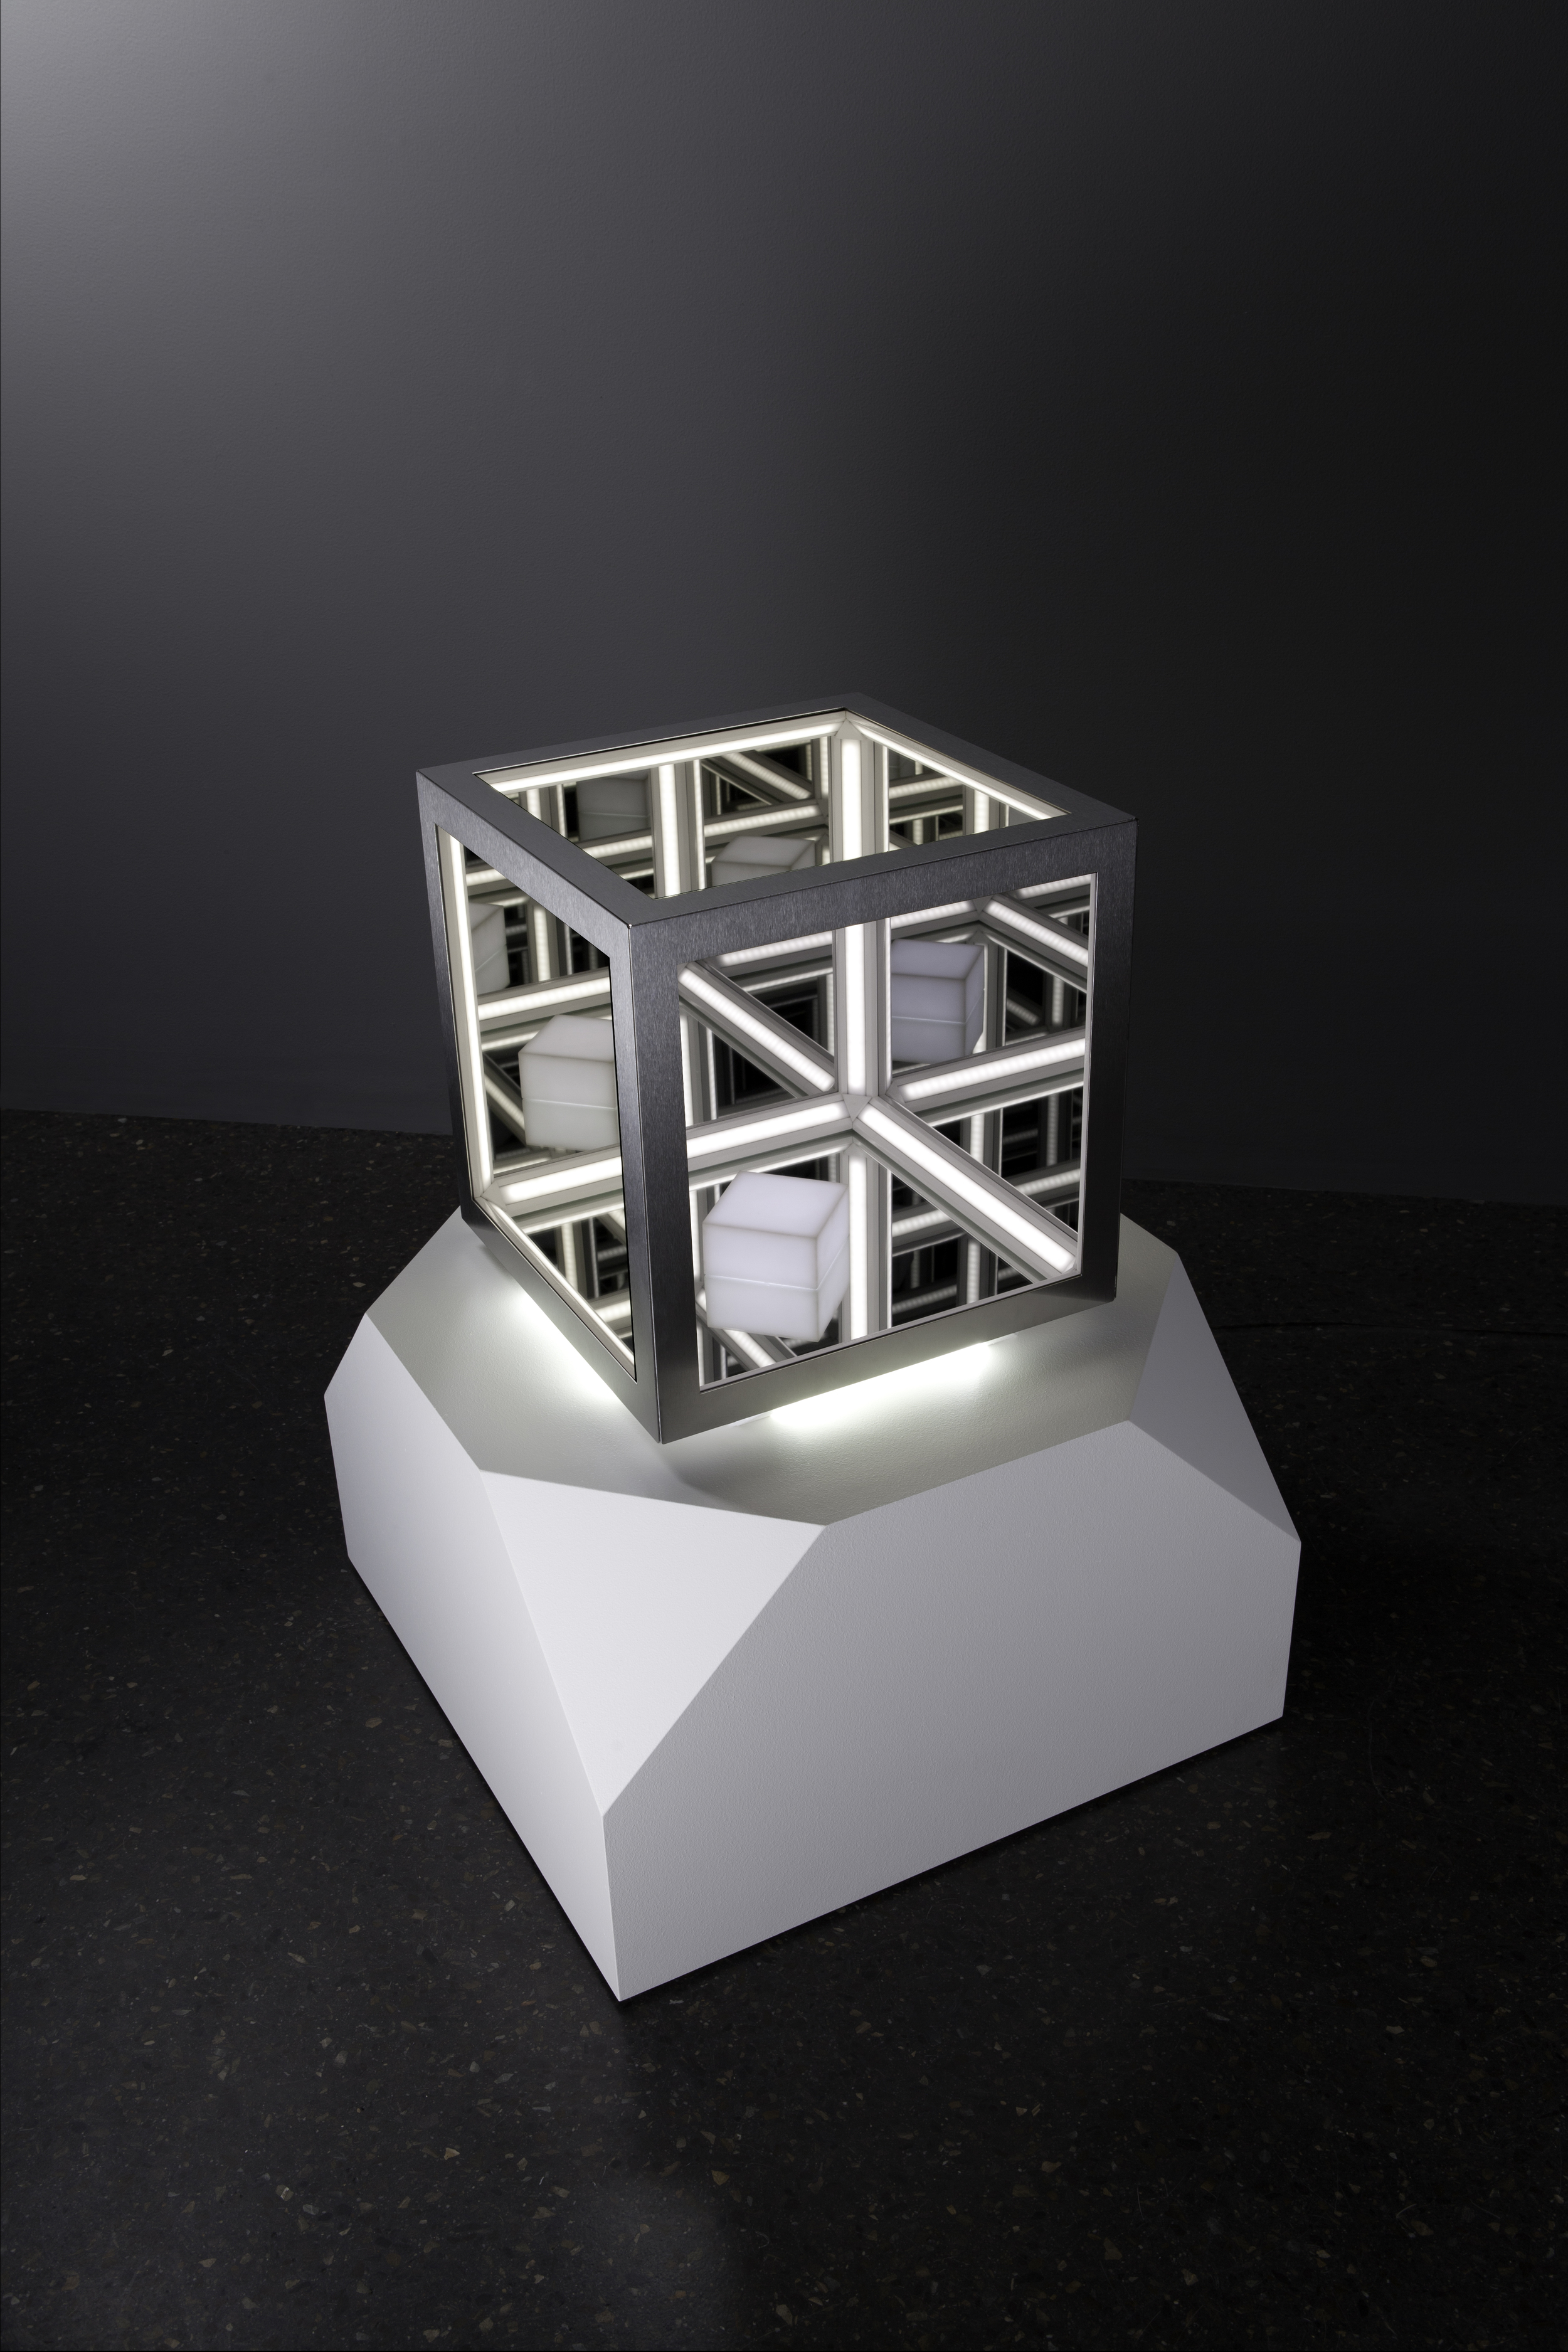 Cubed , wood, mirror, reflective glass, Perspex, stainless steel, MDF and LED lights, 76x 60x 60cm (includingplinth). Photo: Pippy Mount.